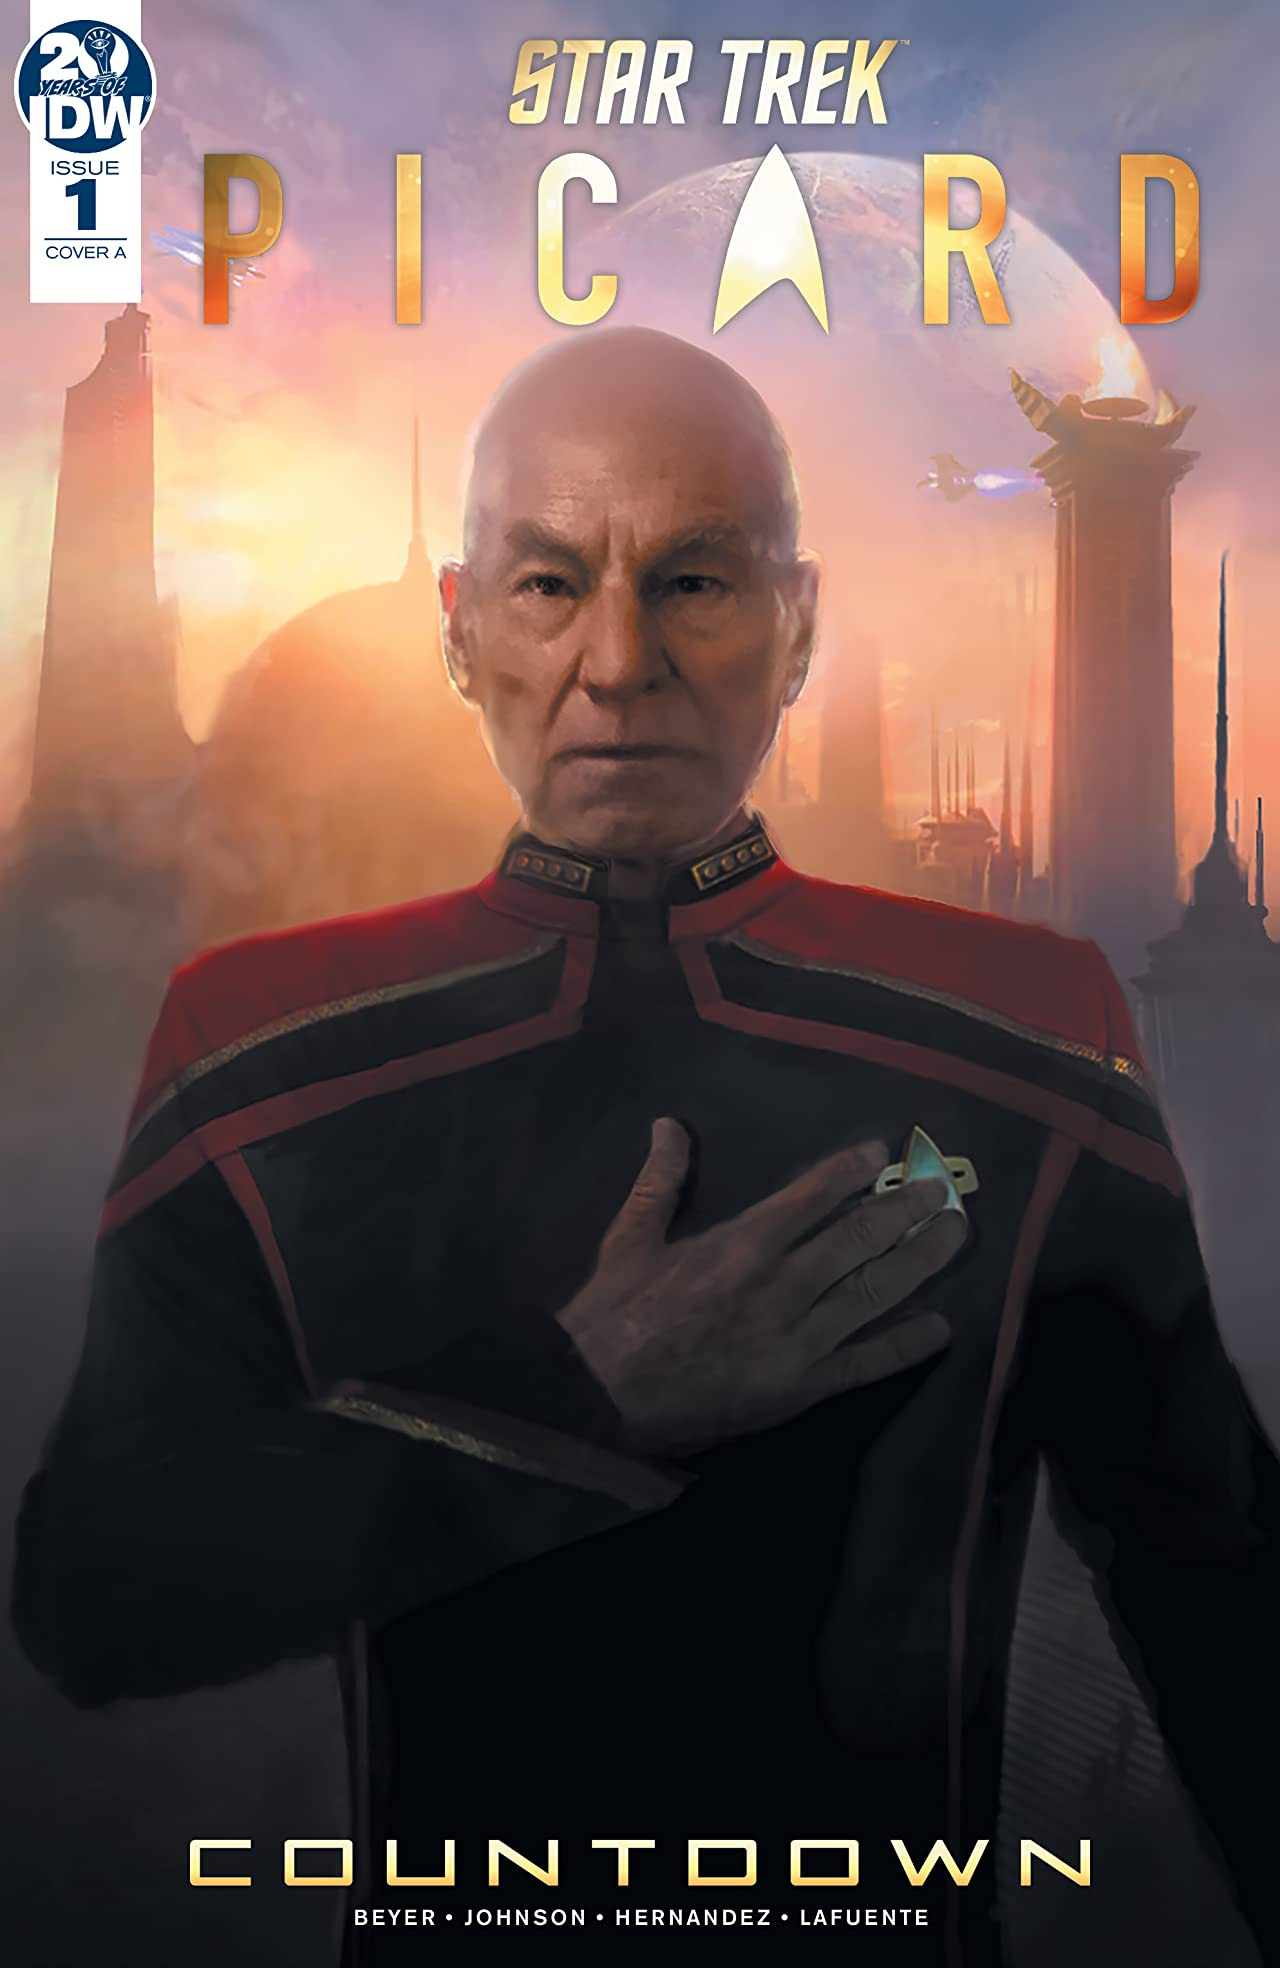 Star Trek: Picard—Countdown No.1 (sur 3)